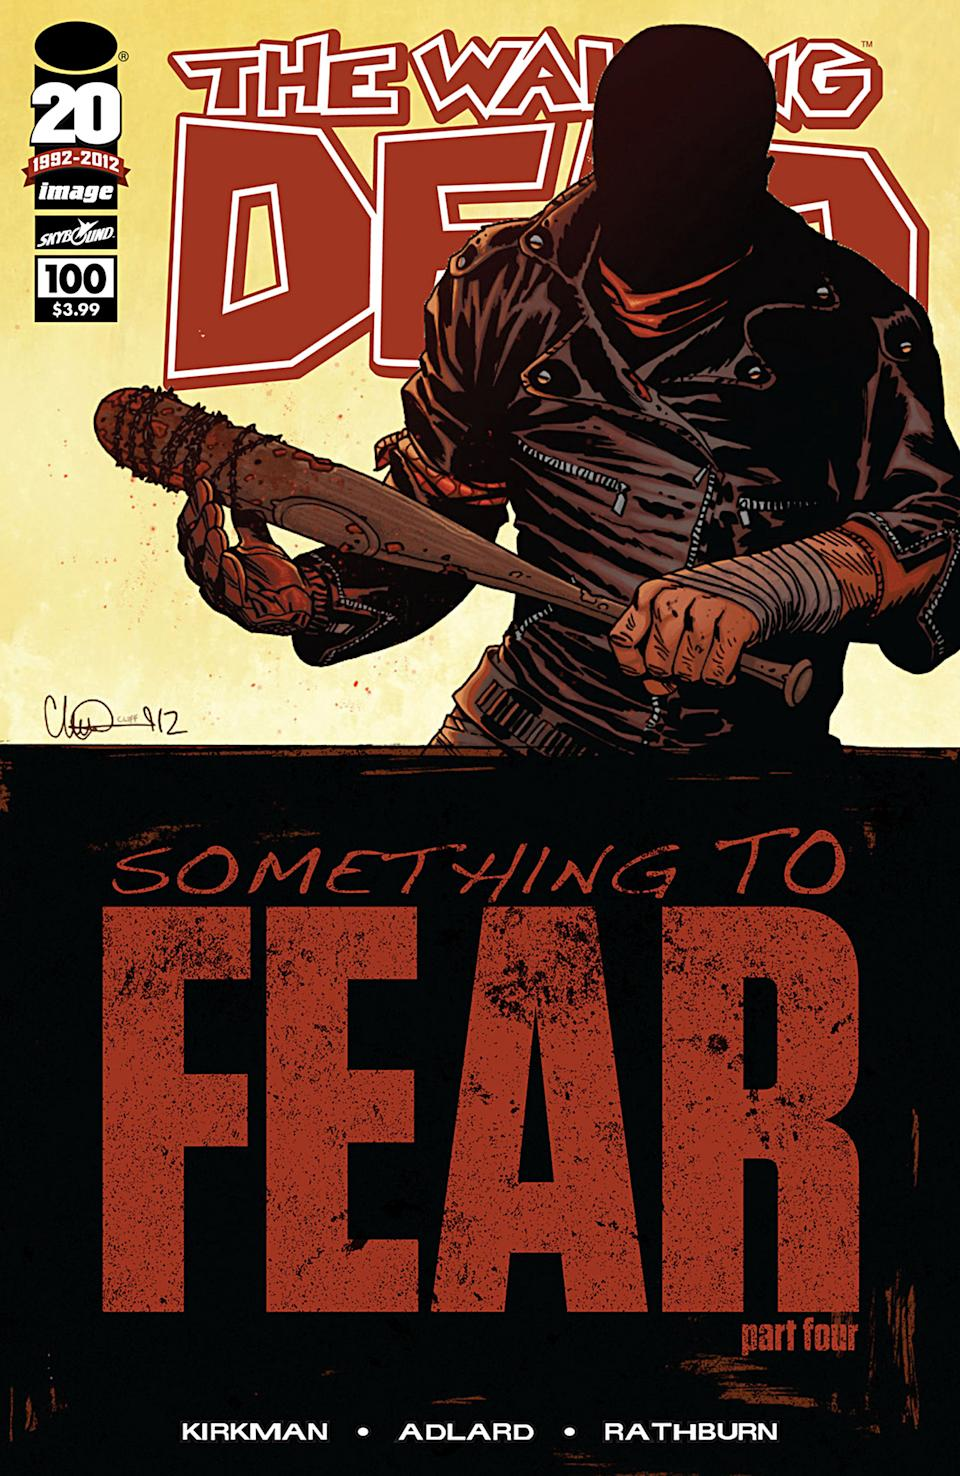 'The Walking Dead' was 2012's top-selling comic